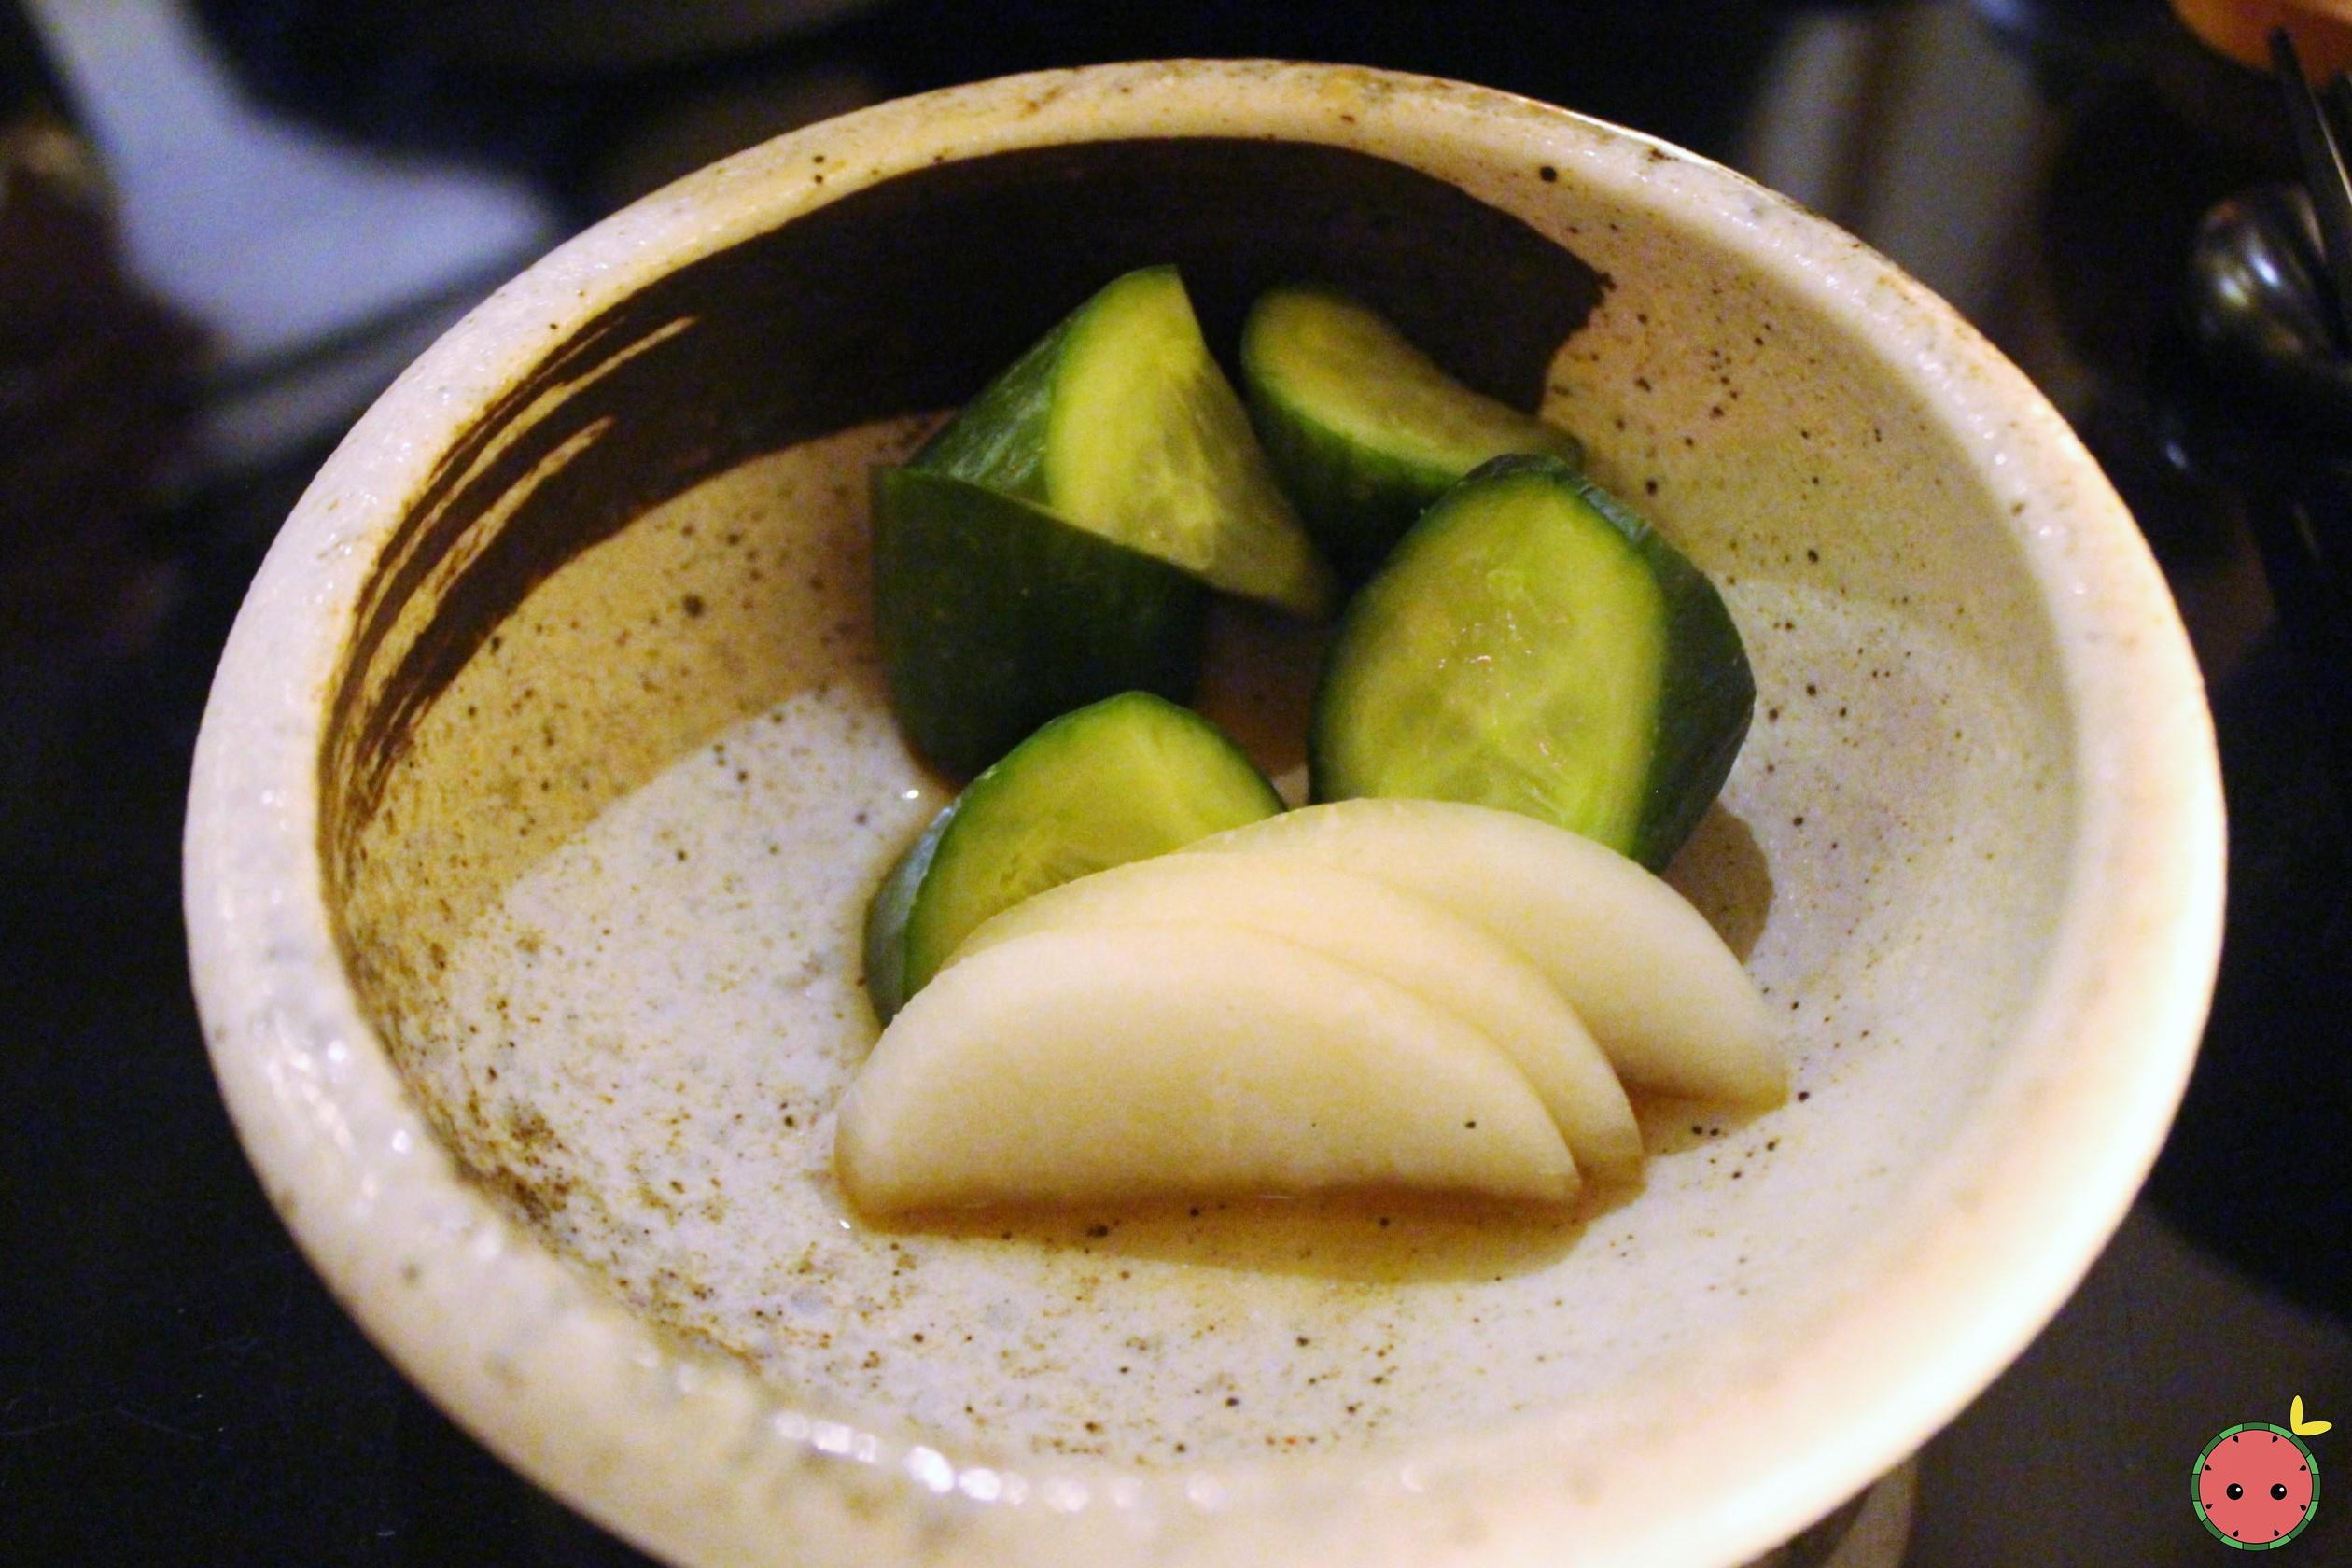 Pickeled radish and cucumber